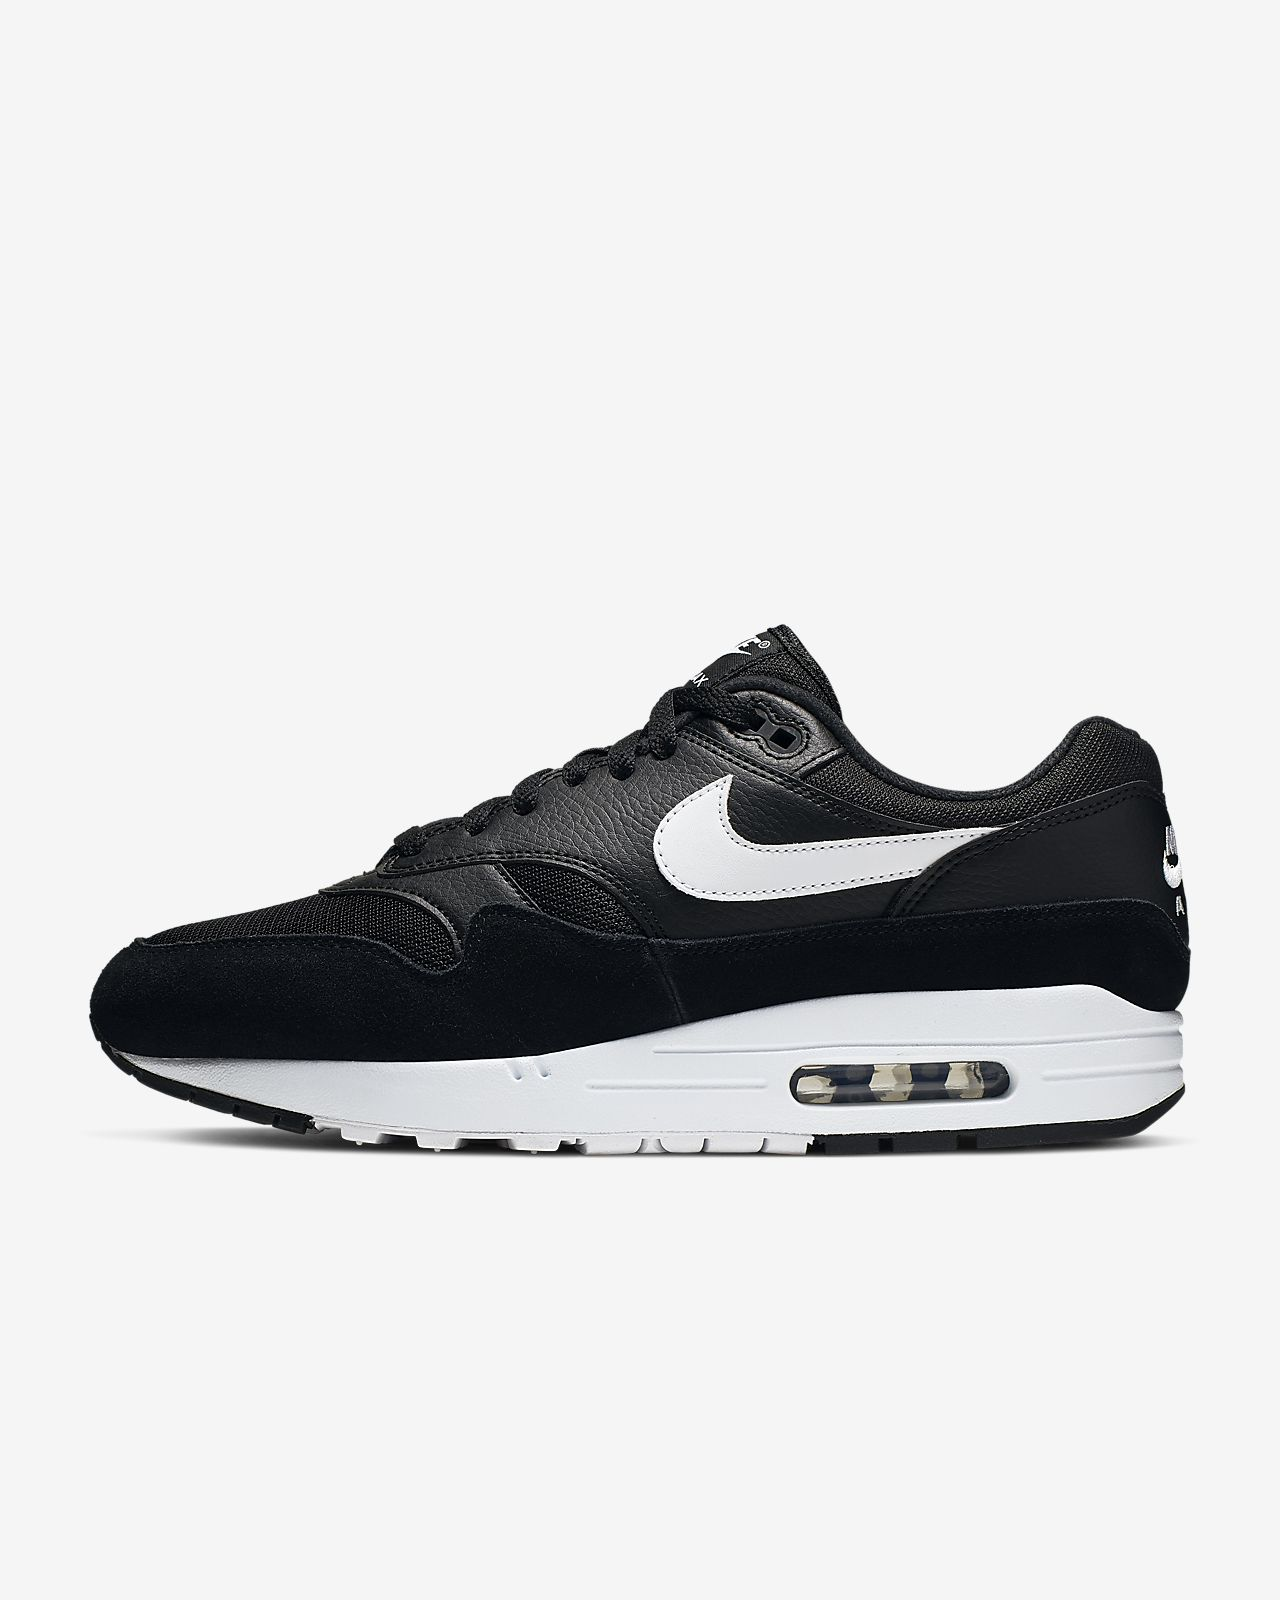 Max HommeCa Nike 1 Pour Chaussure Air XZlOPiuwkT